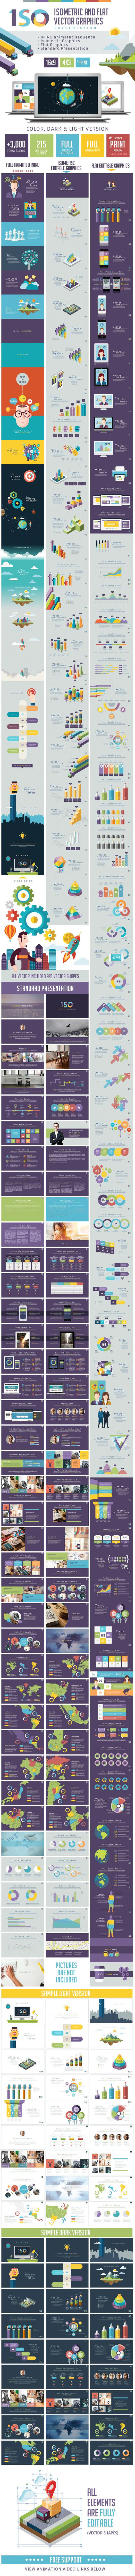 Iso multipurpose powerpoint template templates business iso multipurpose powerpoint template toneelgroepblik Choice Image